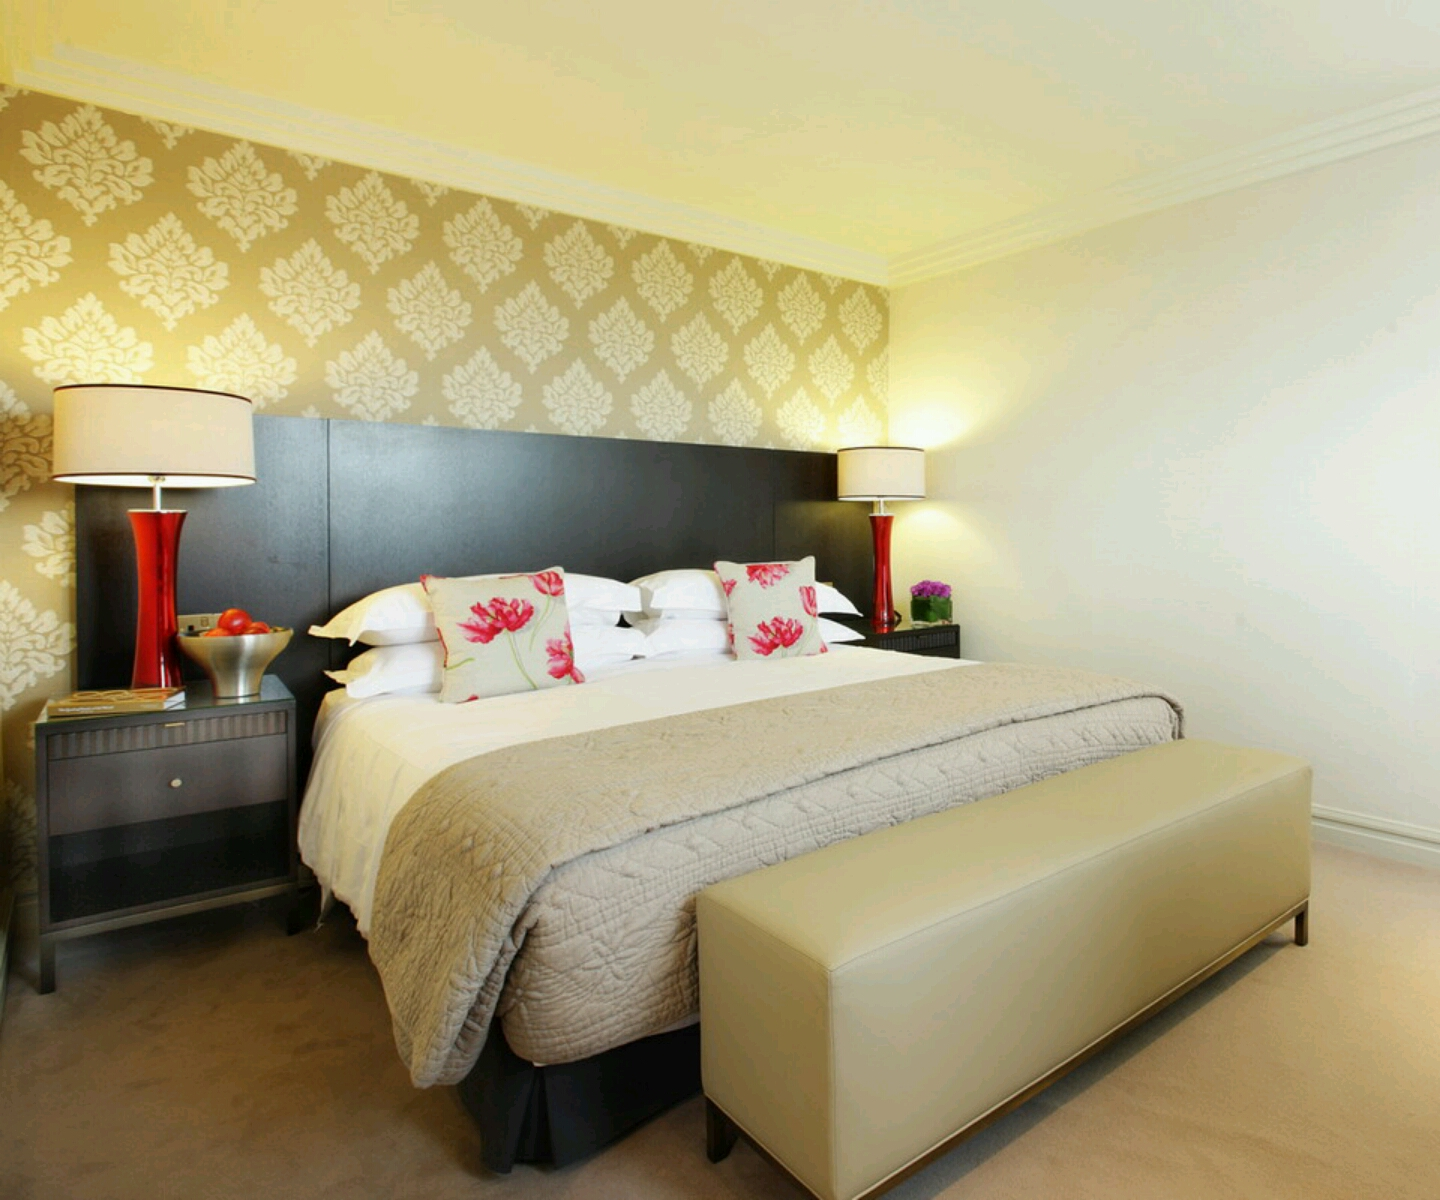 New Home Designs Latest Luxury Homes Interior Decoration: New Home Designs Latest.: December 2012